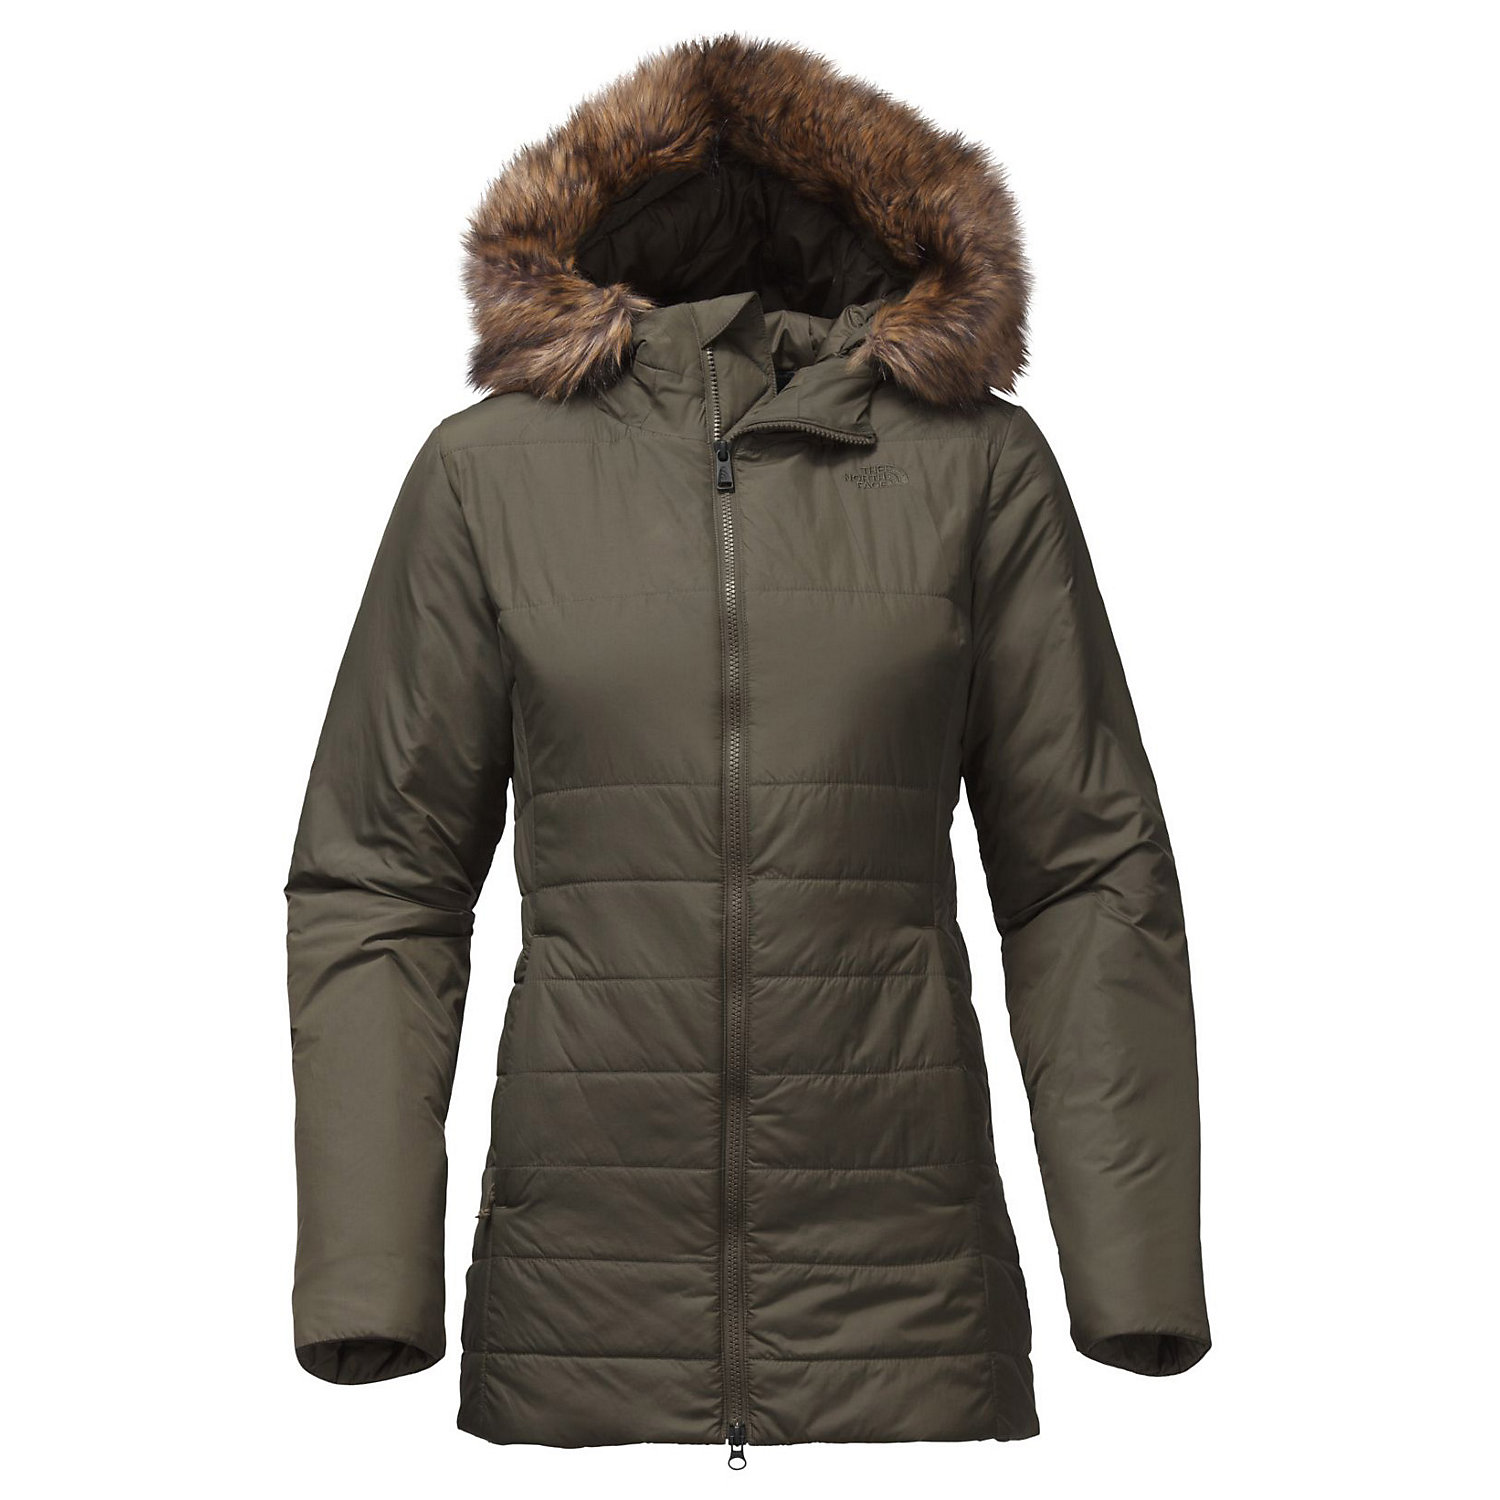 4714973fa The North Face Women's Harway Insulated Parka